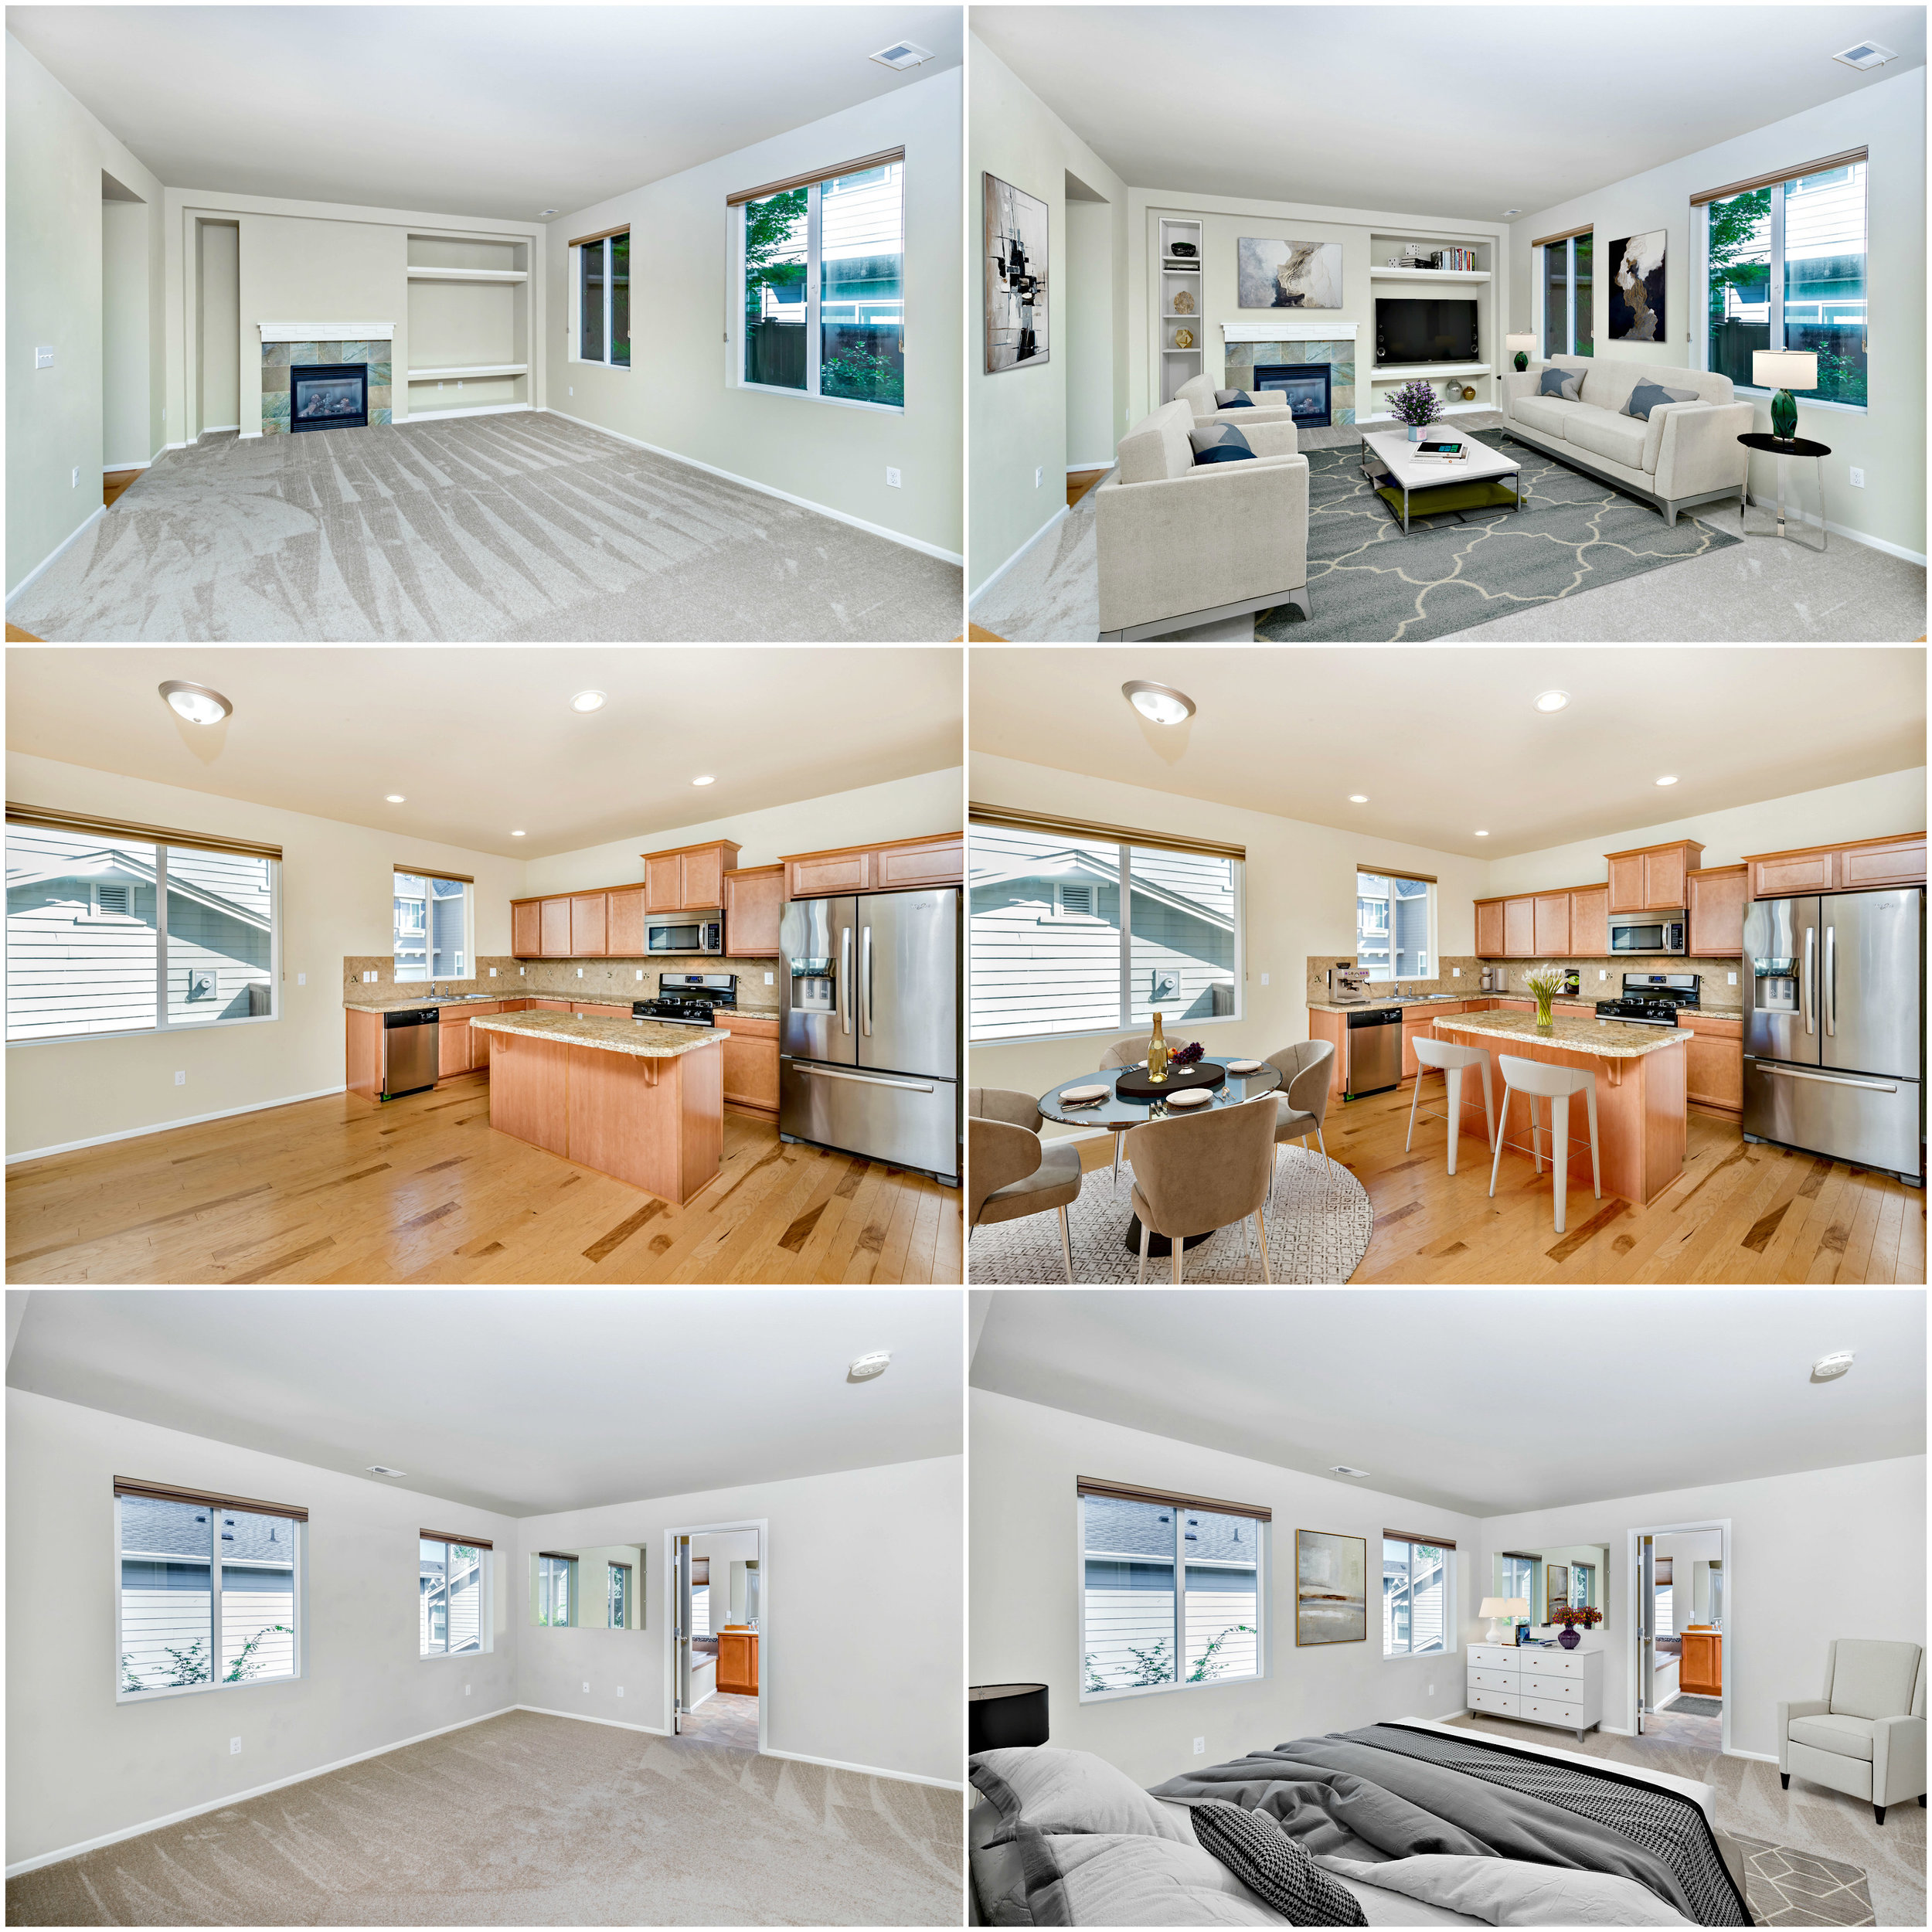 Real Estate listing photos we shot and virtually staged for  Mark Mizuno  in Bothell, WA. Shot by Shadi.